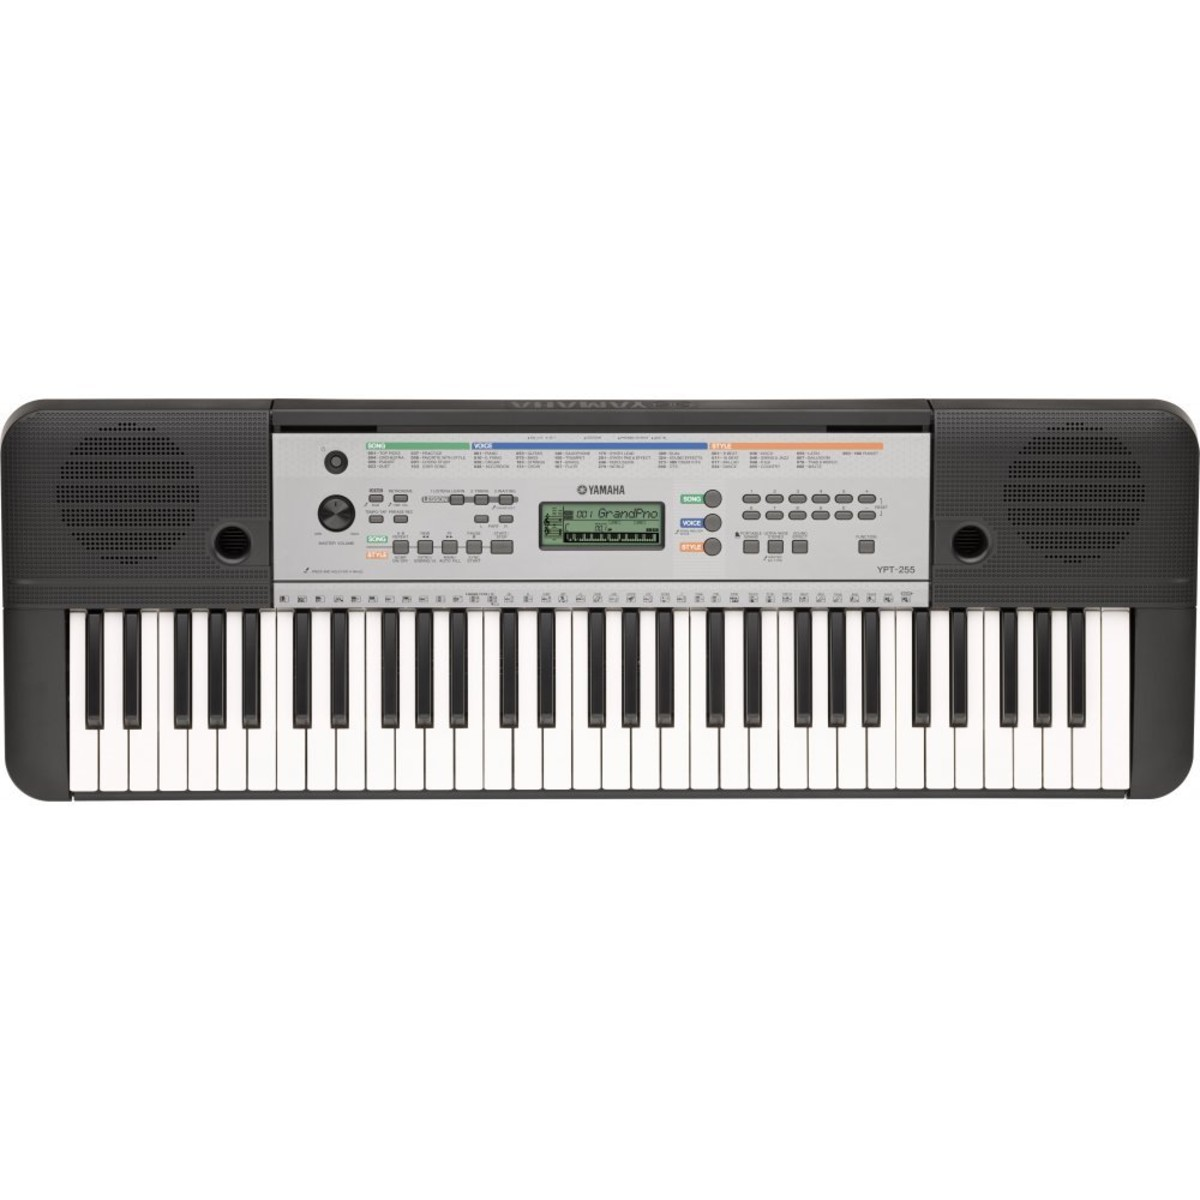 Yamaha ypt 255 61 key portable keyboard box opened at for Yamaha learning keyboard